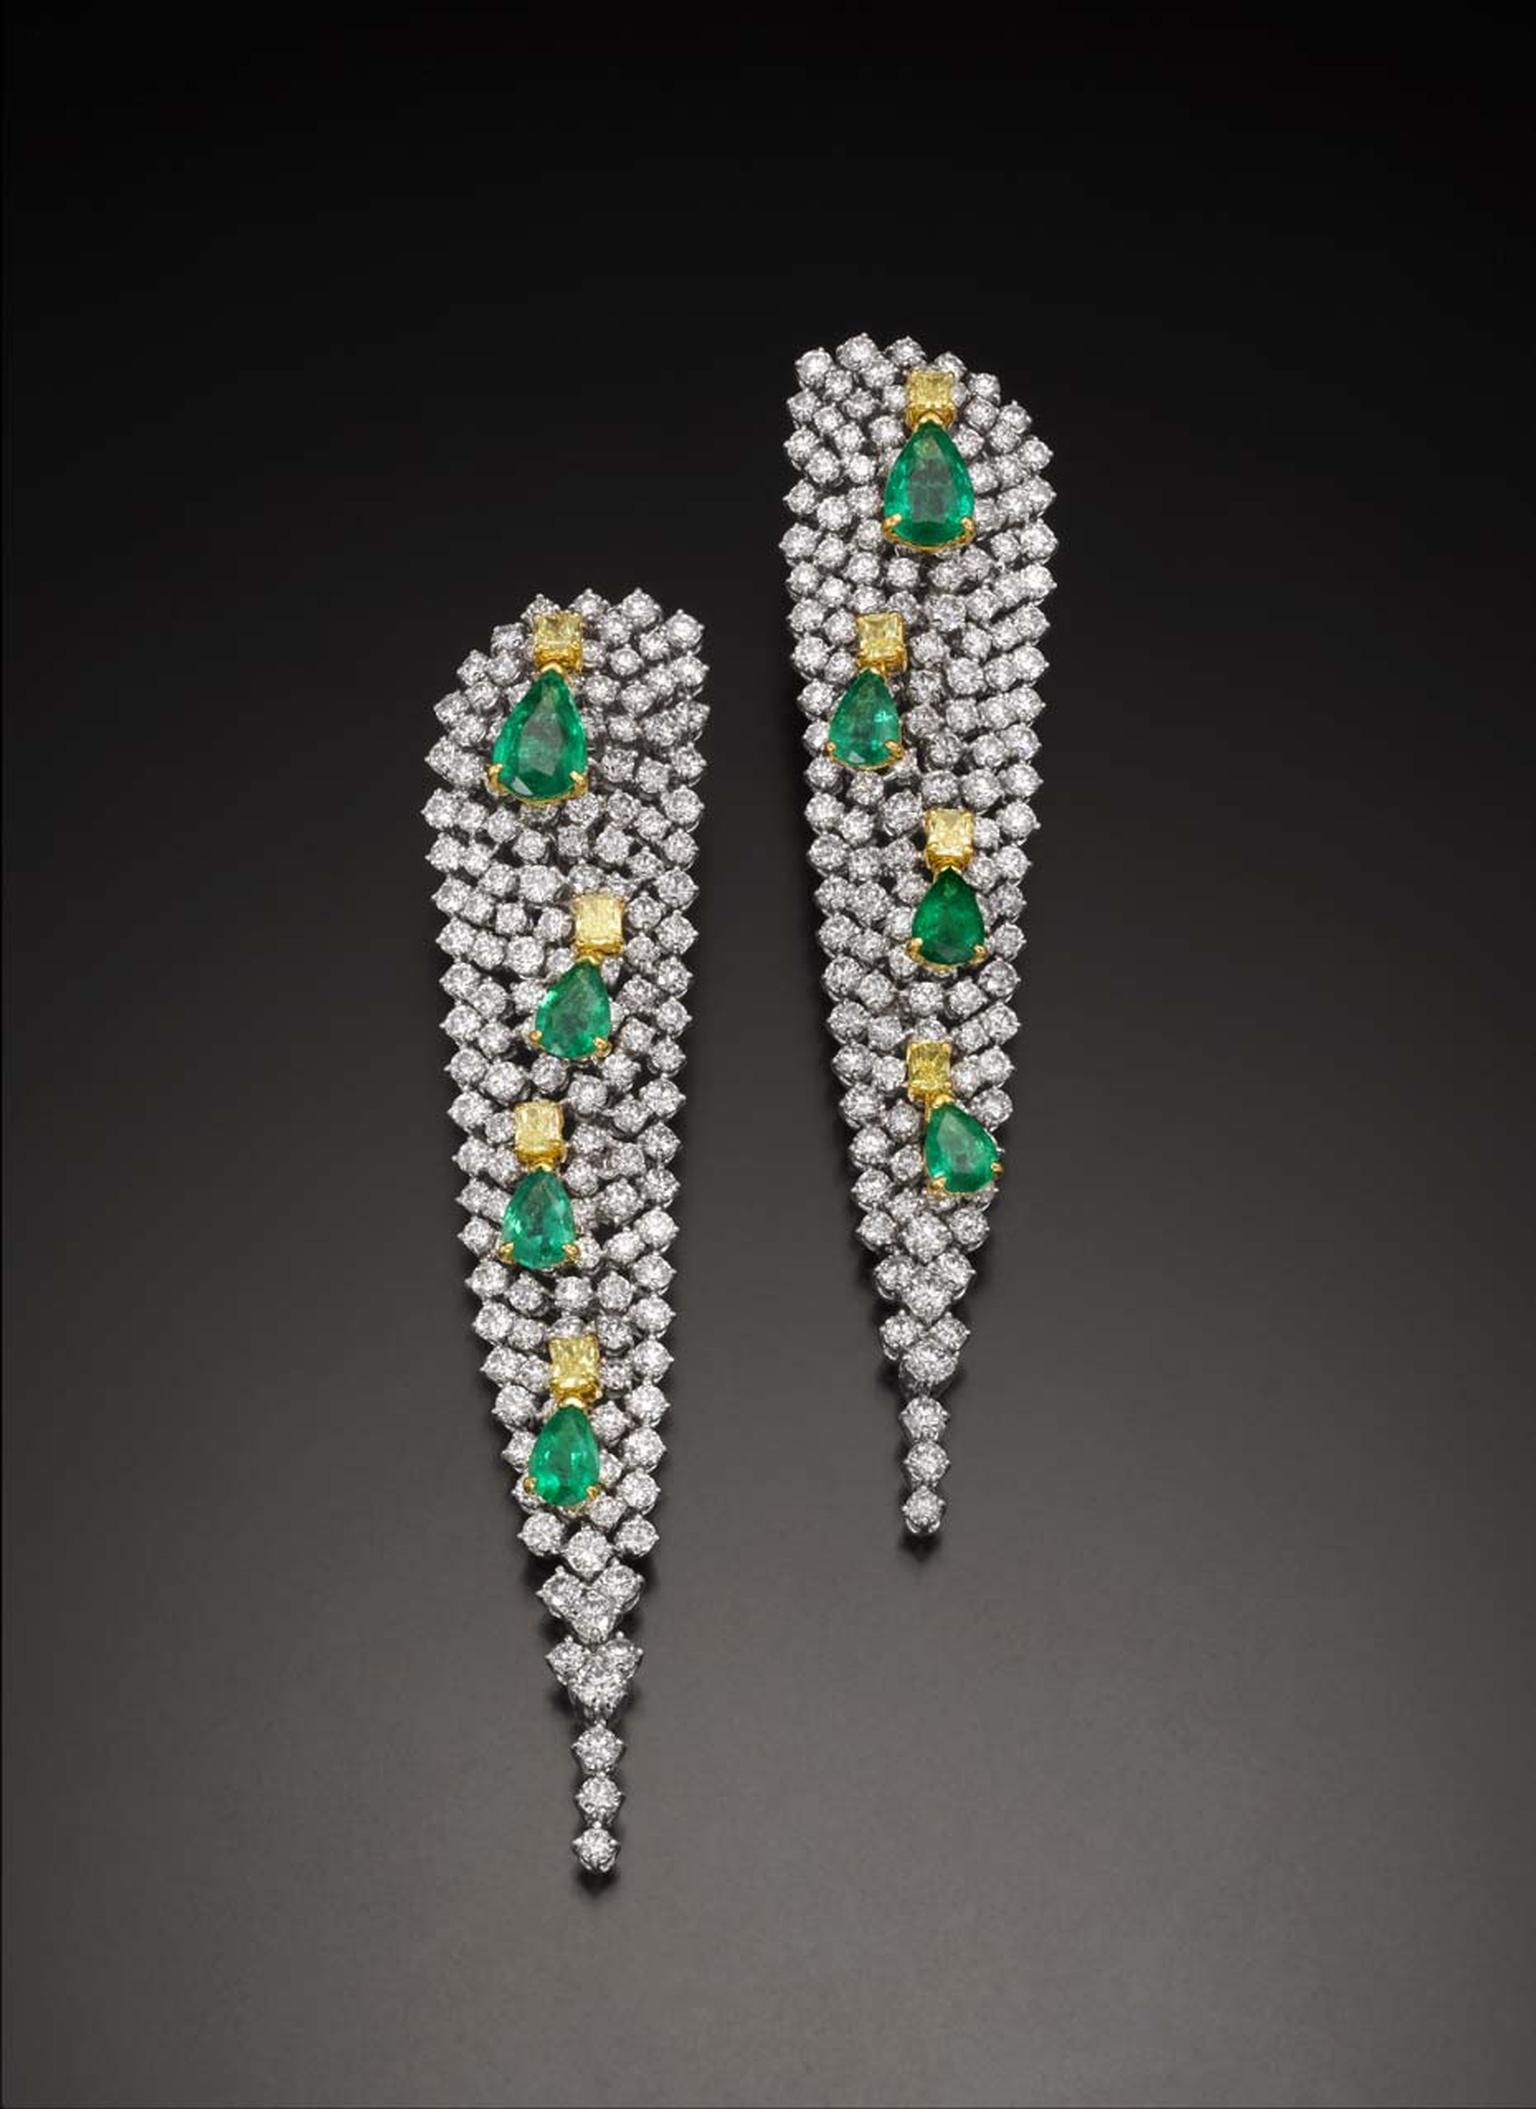 Emerald, yellow diamond and white diamond Water Lily earrings by Butani.